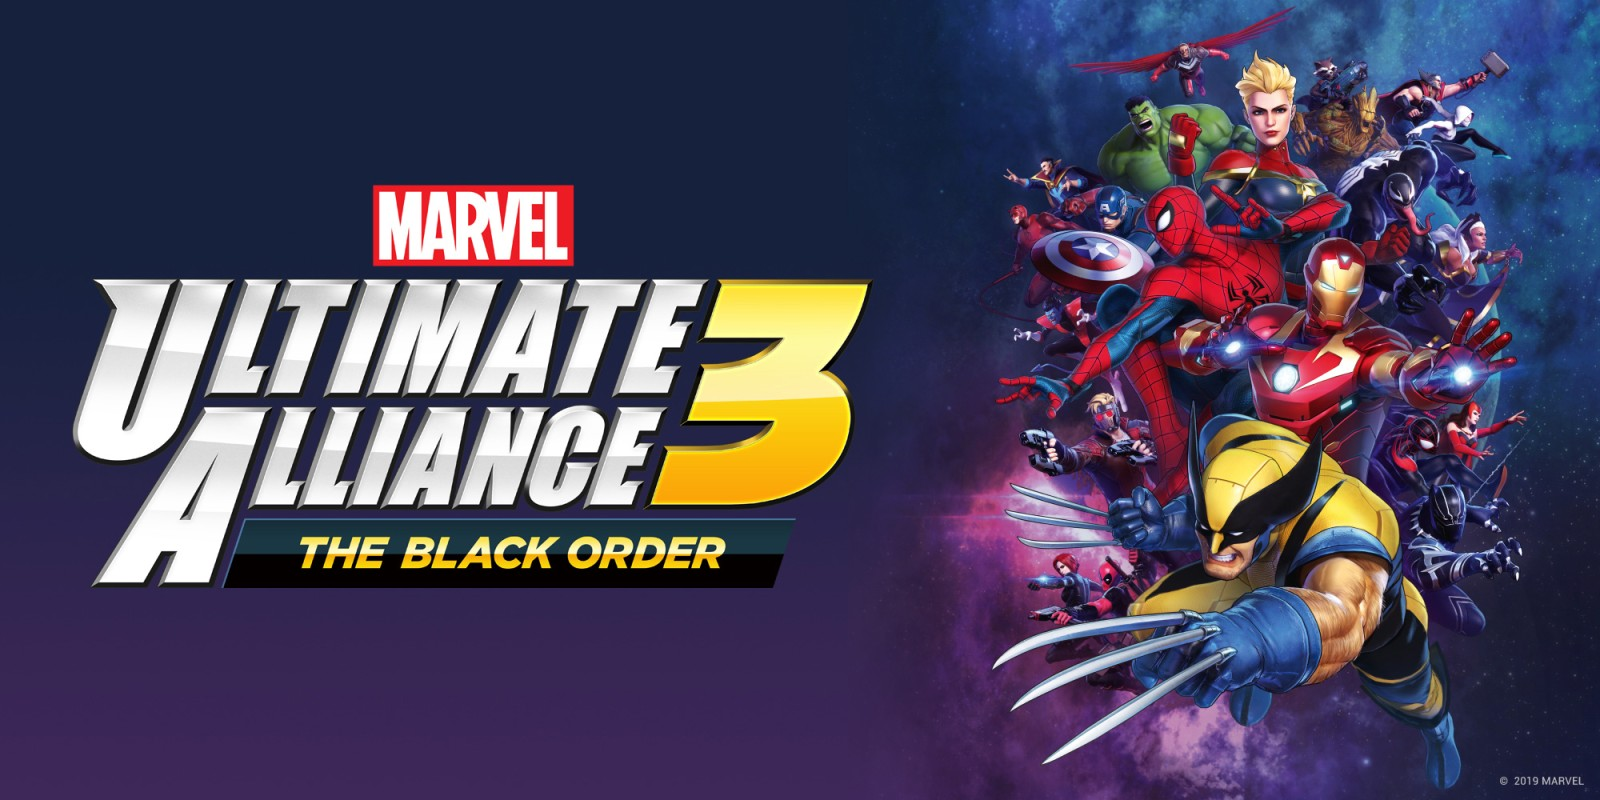 Marvel Ultimate Alliance 3: What to Expect and What We Know